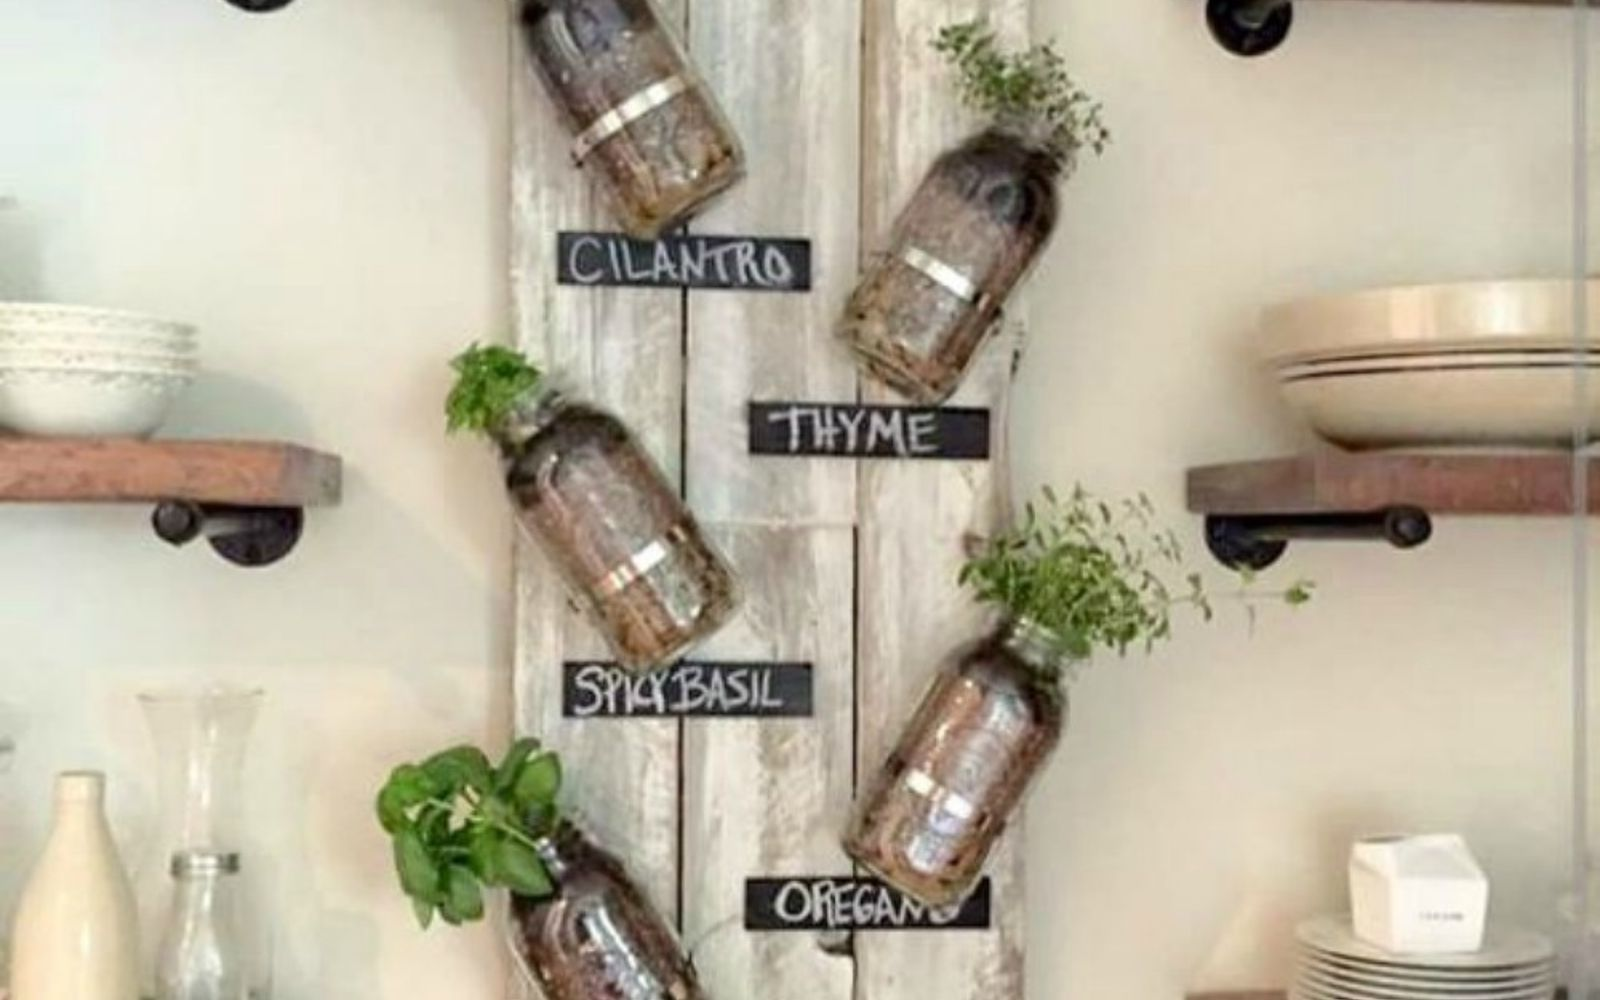 s get rid of kitchen countertop clutter with 13 clever mason jar ideas, countertops, kitchen design, mason jars, organizing, Or mount that herb garden on your wall